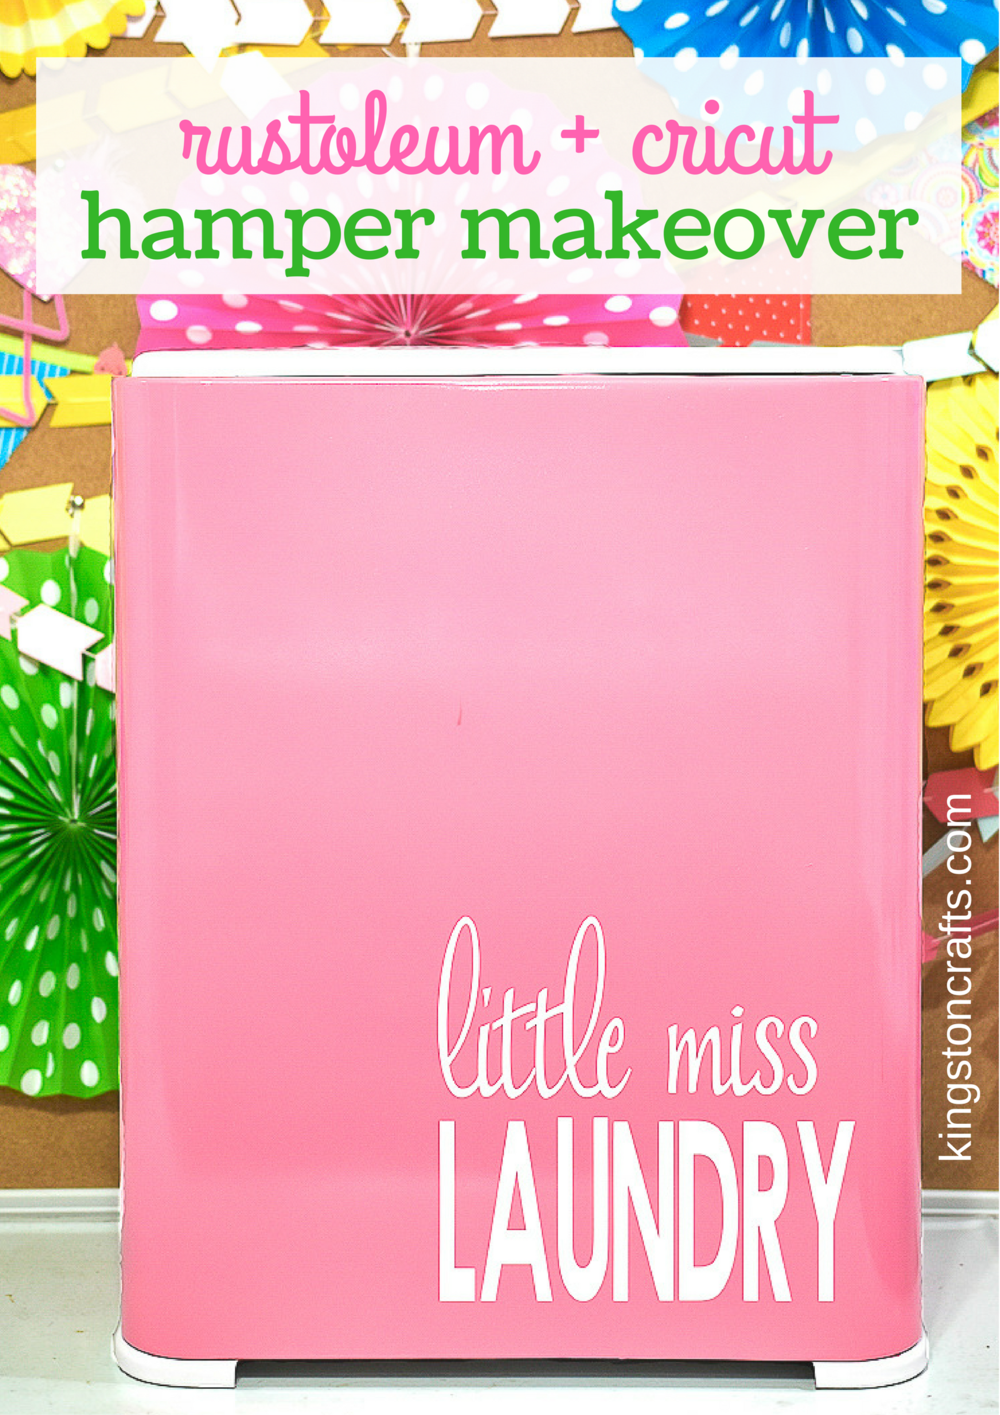 Little Miss Laundry Hamper